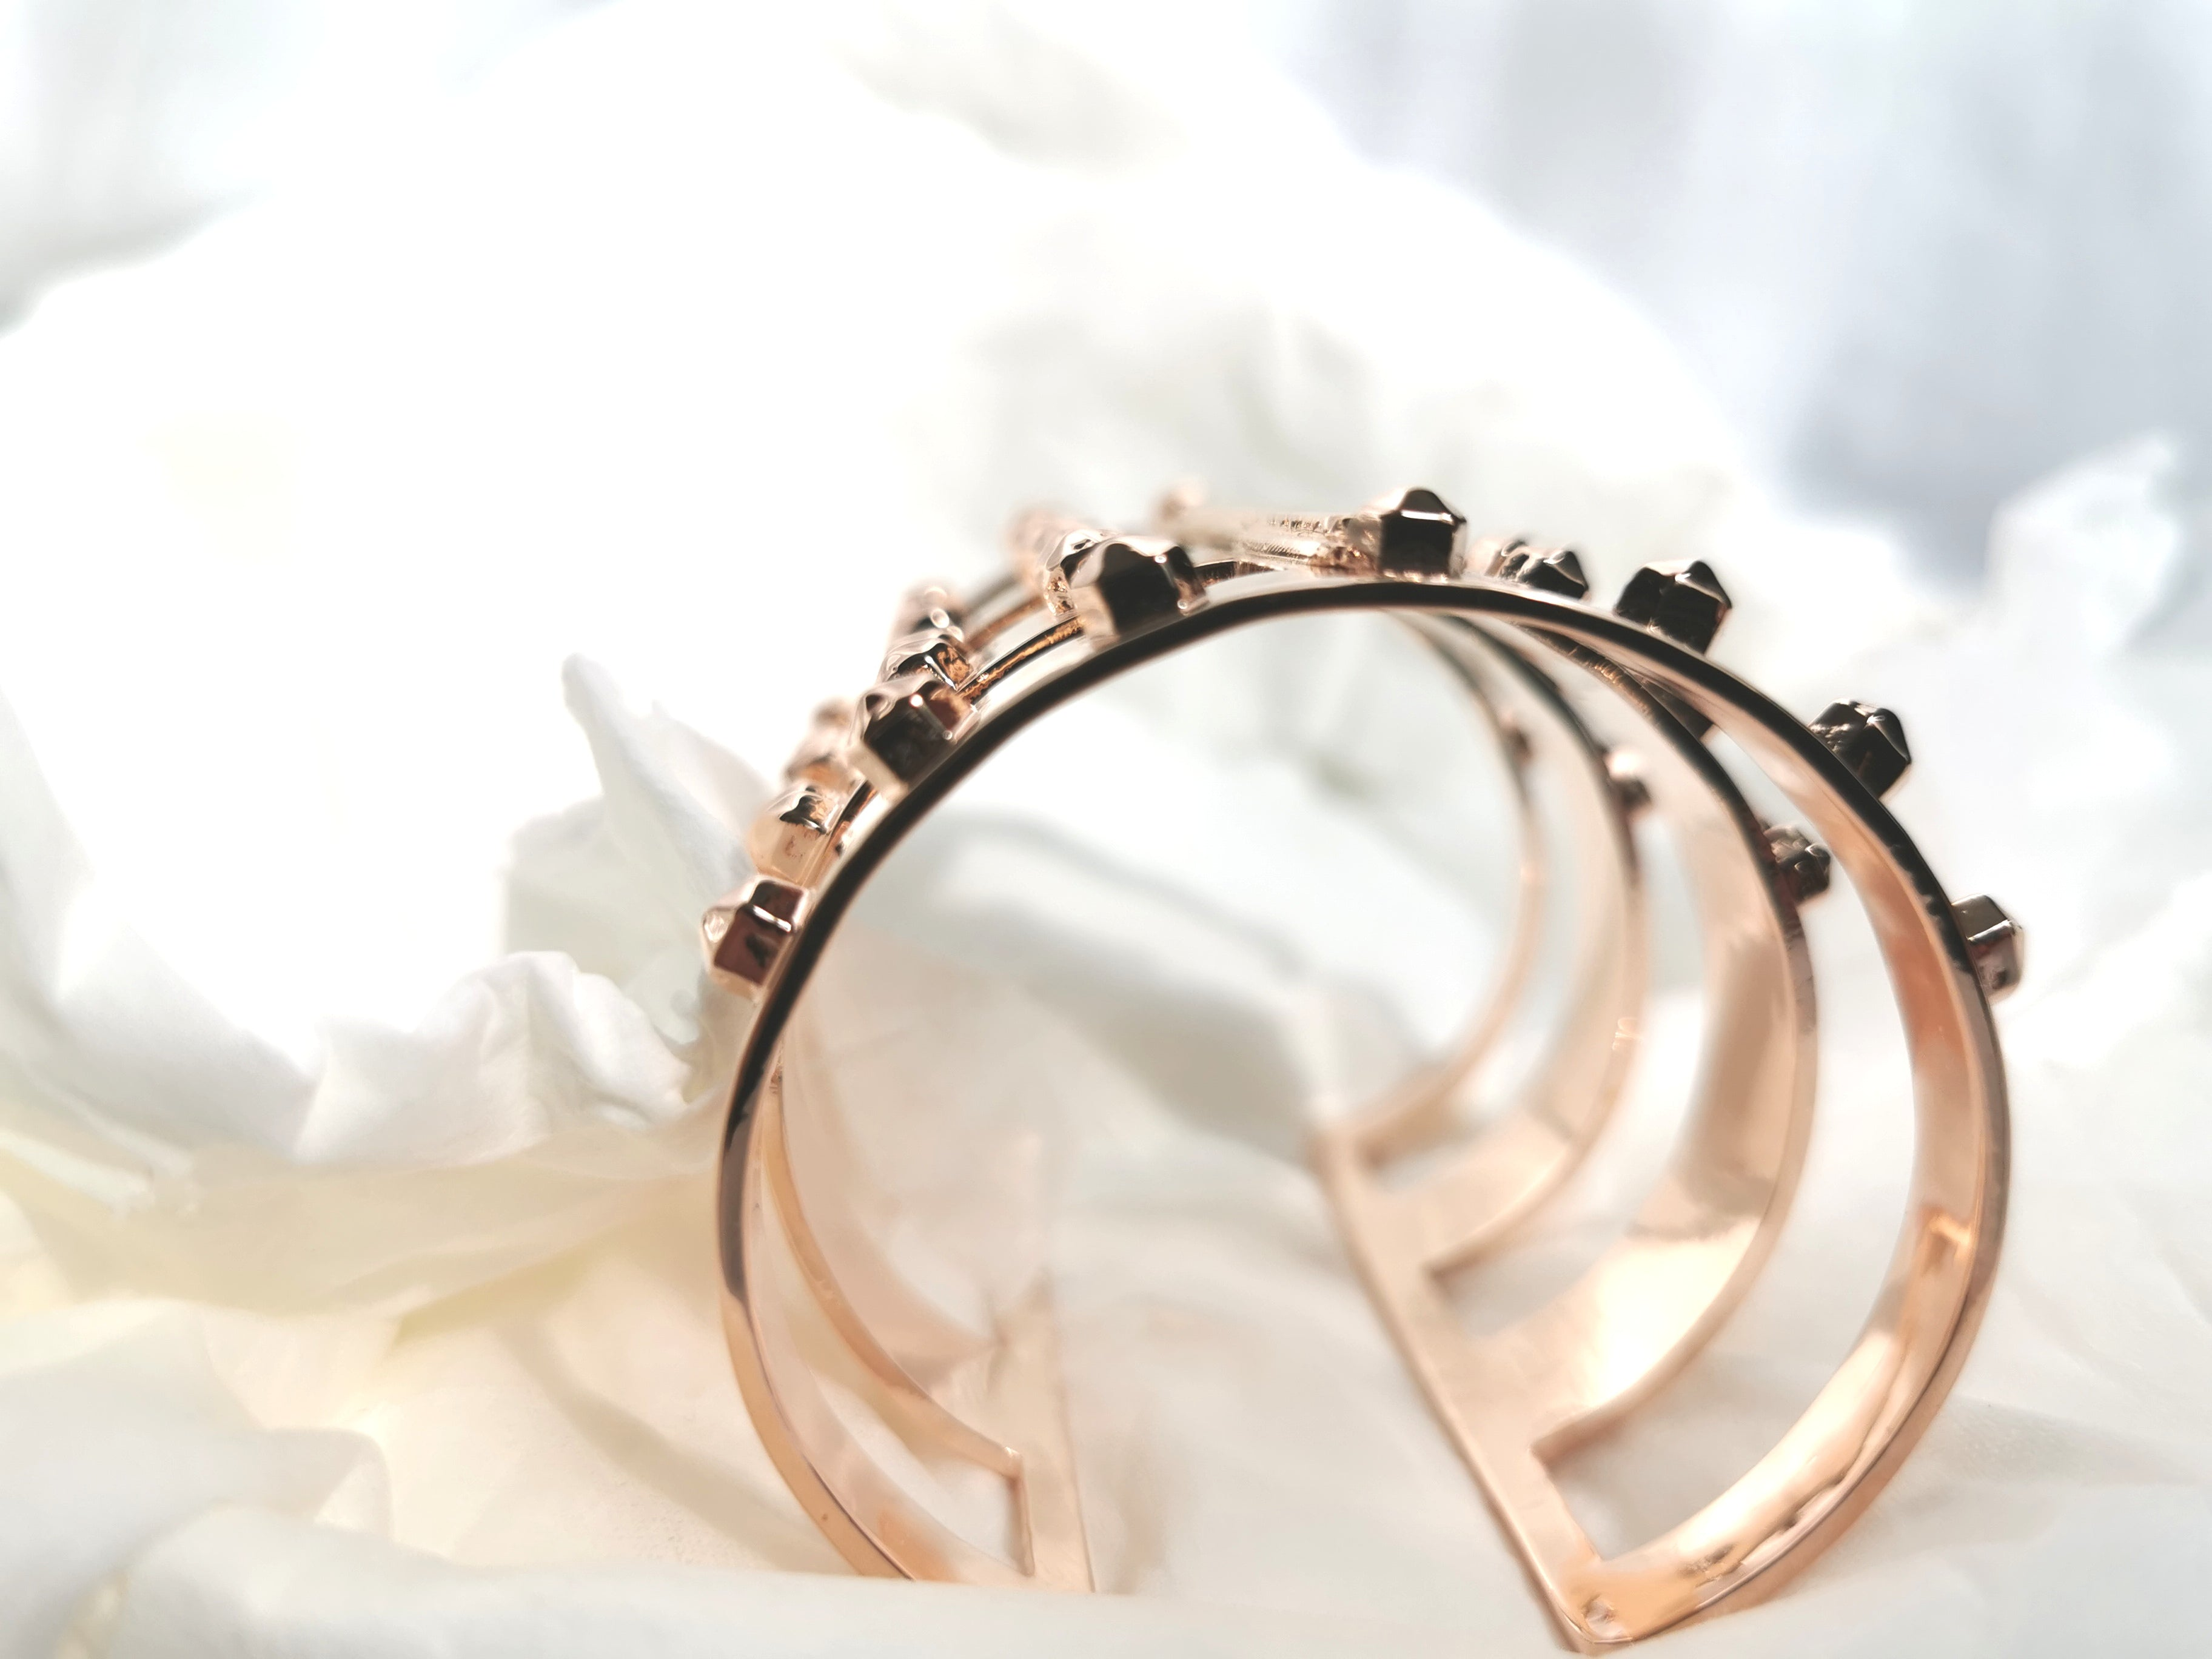 rose gold stylish sustainable jewelry women recycled materials